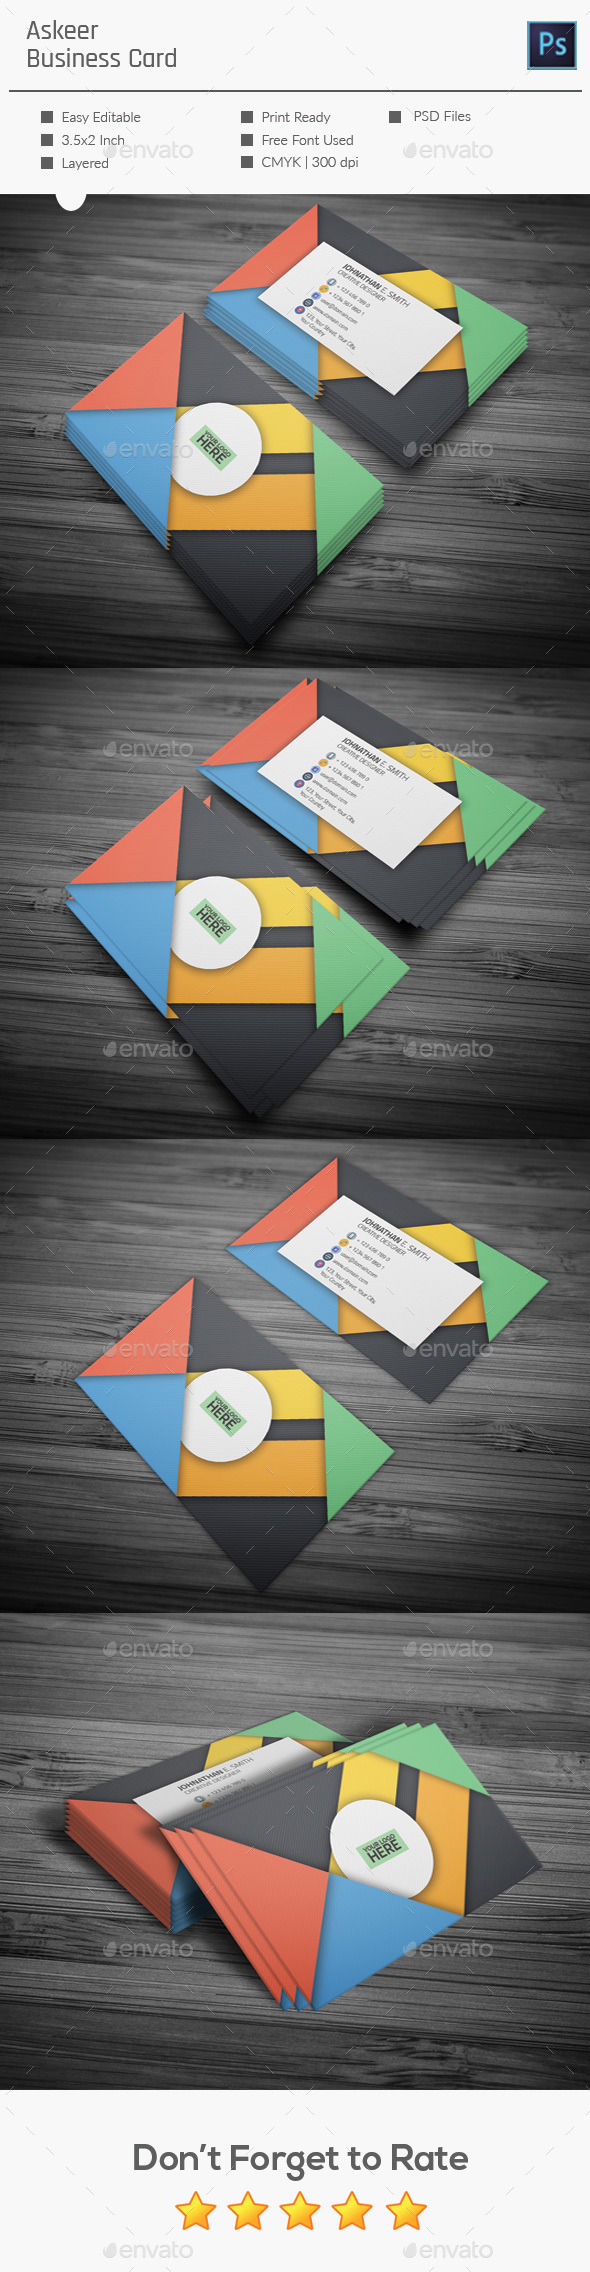 Askeer Business Card  - Creative Business Cards